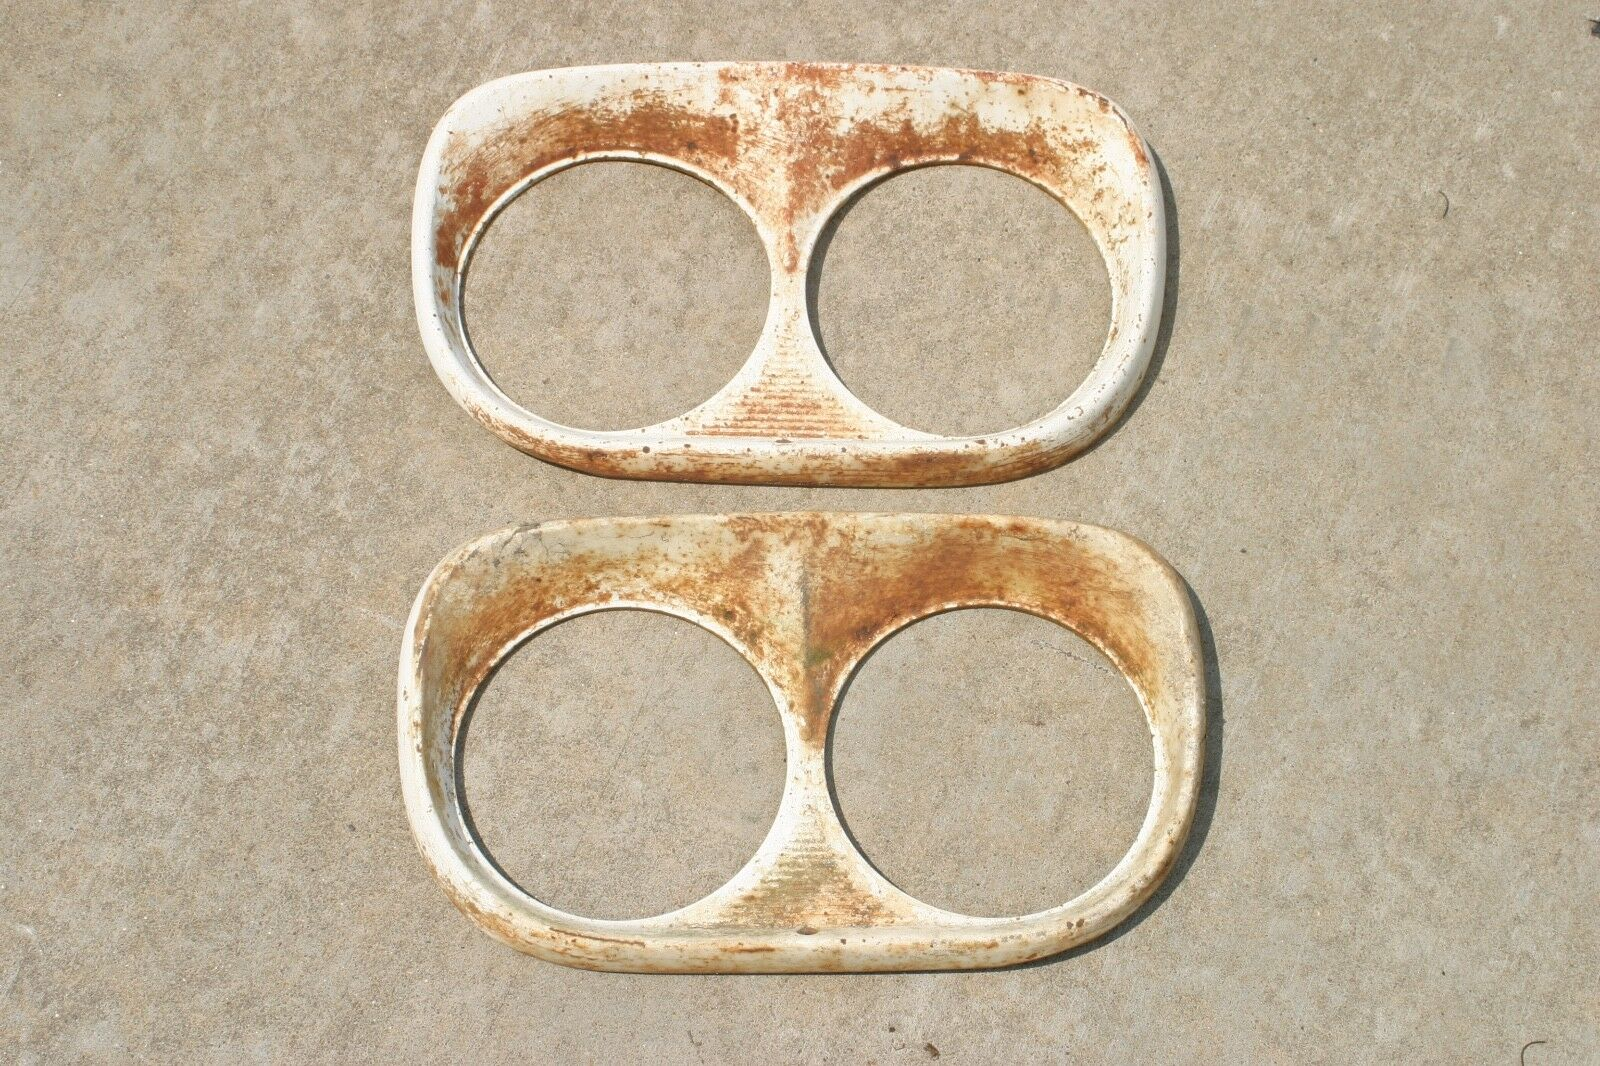 1958 1959 Ford F100 Pickup Truck Headlight Bezels Rings Pair Oem 1960 Wiring Harness 1 Of 8only Available